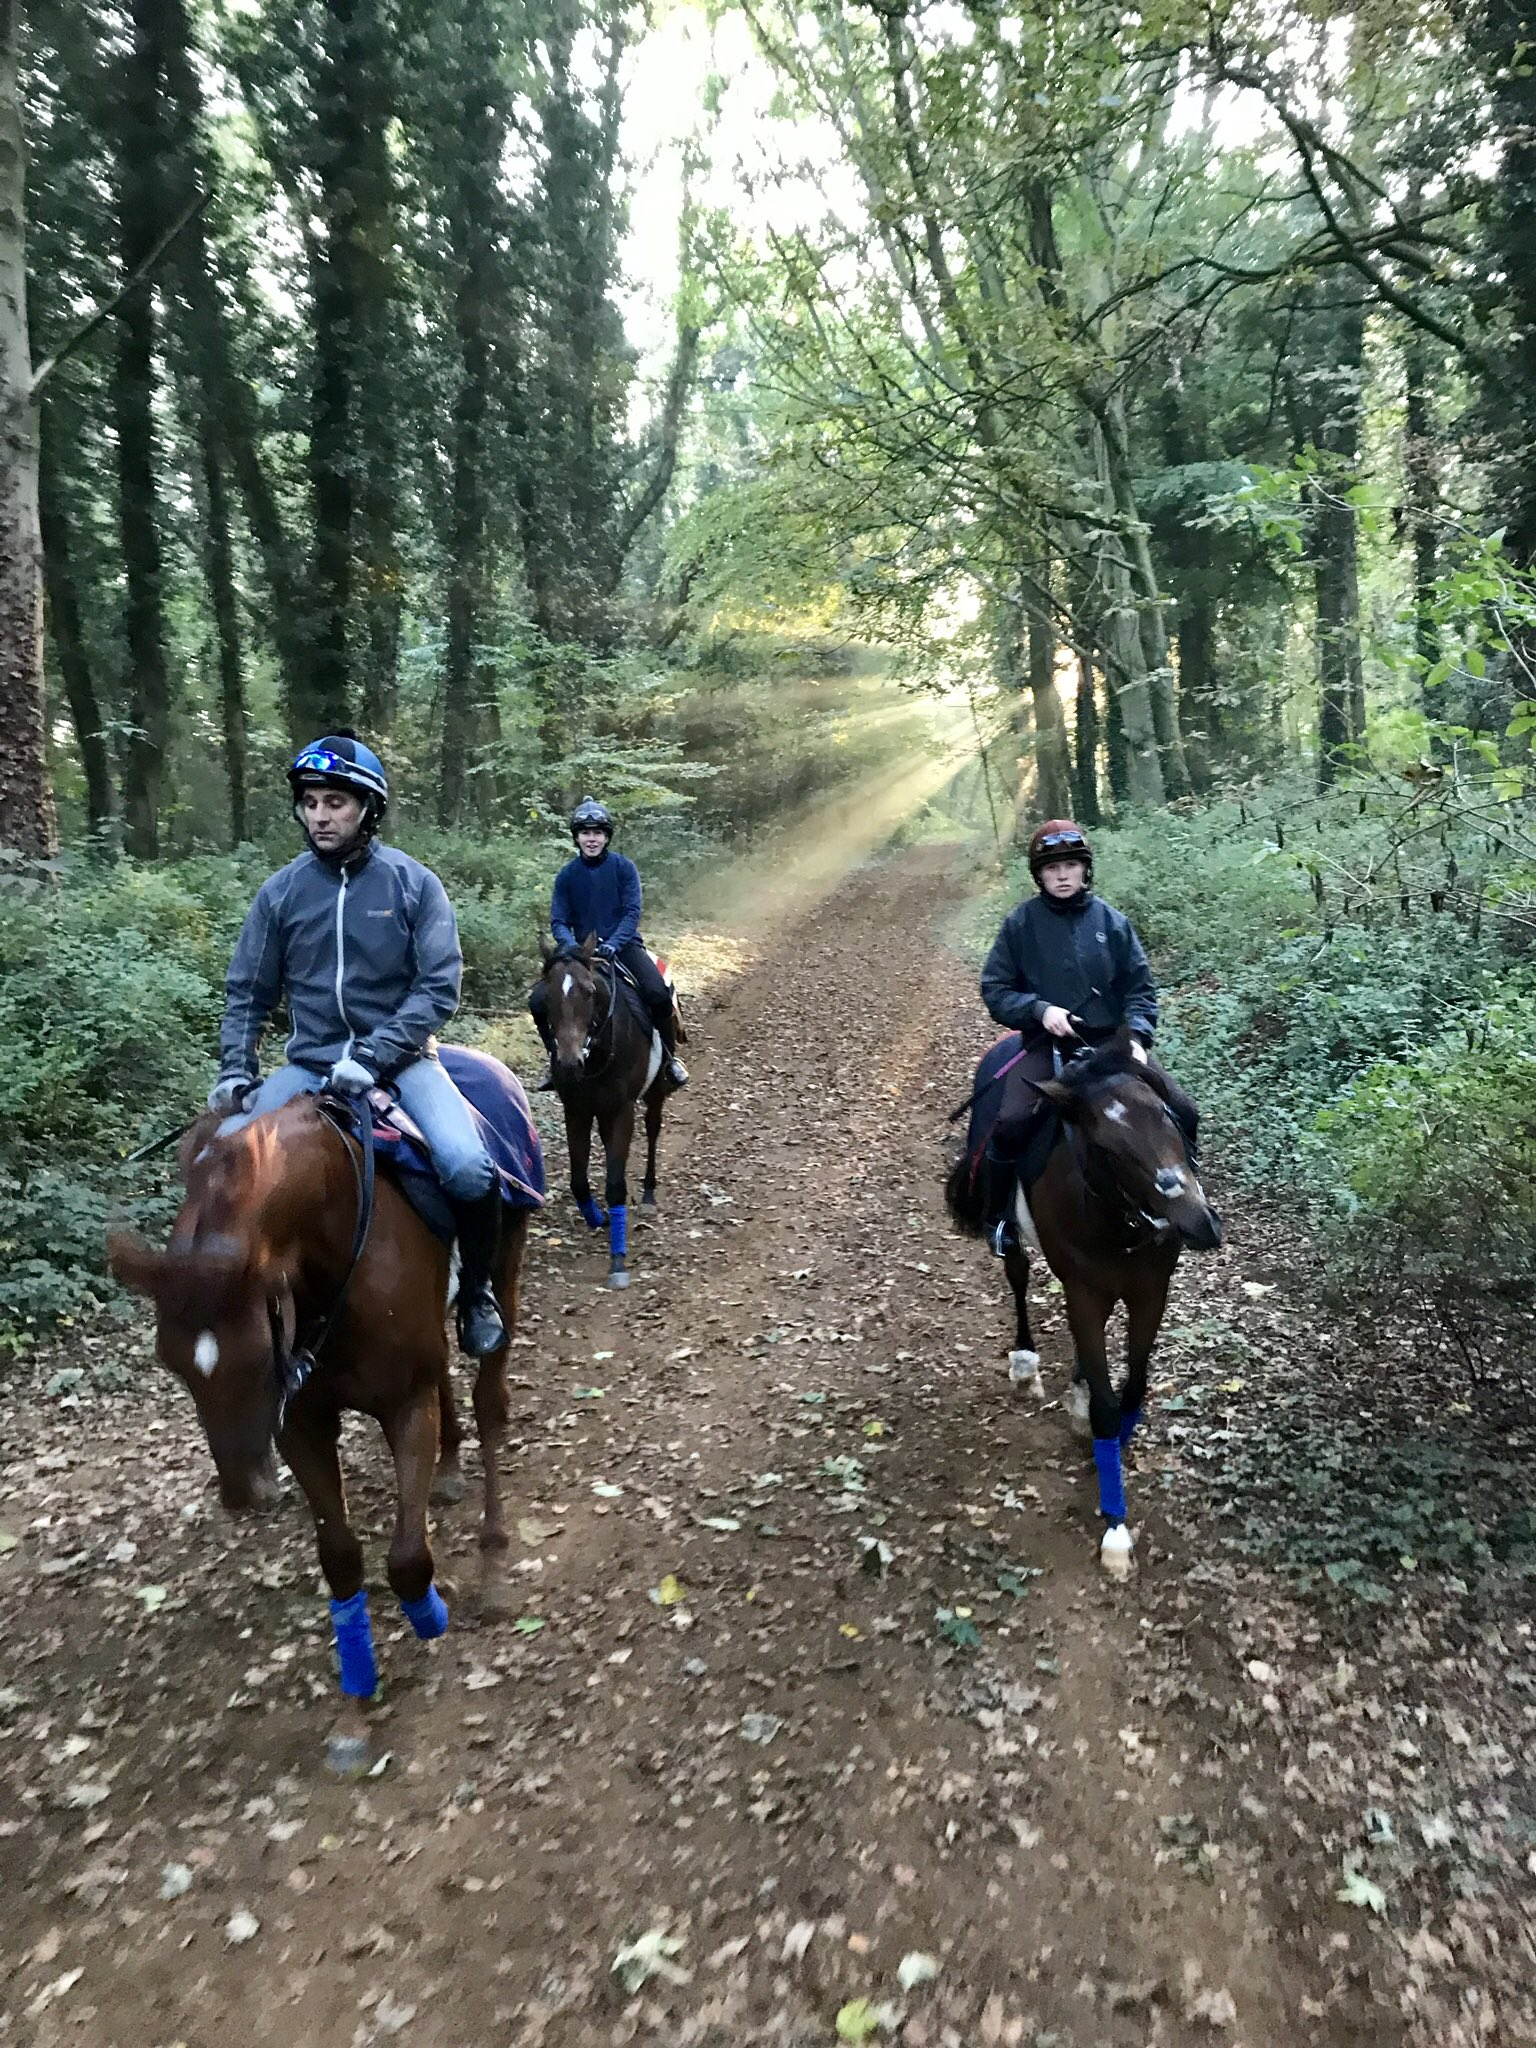 The two year old colts walking through the woods on the way home.